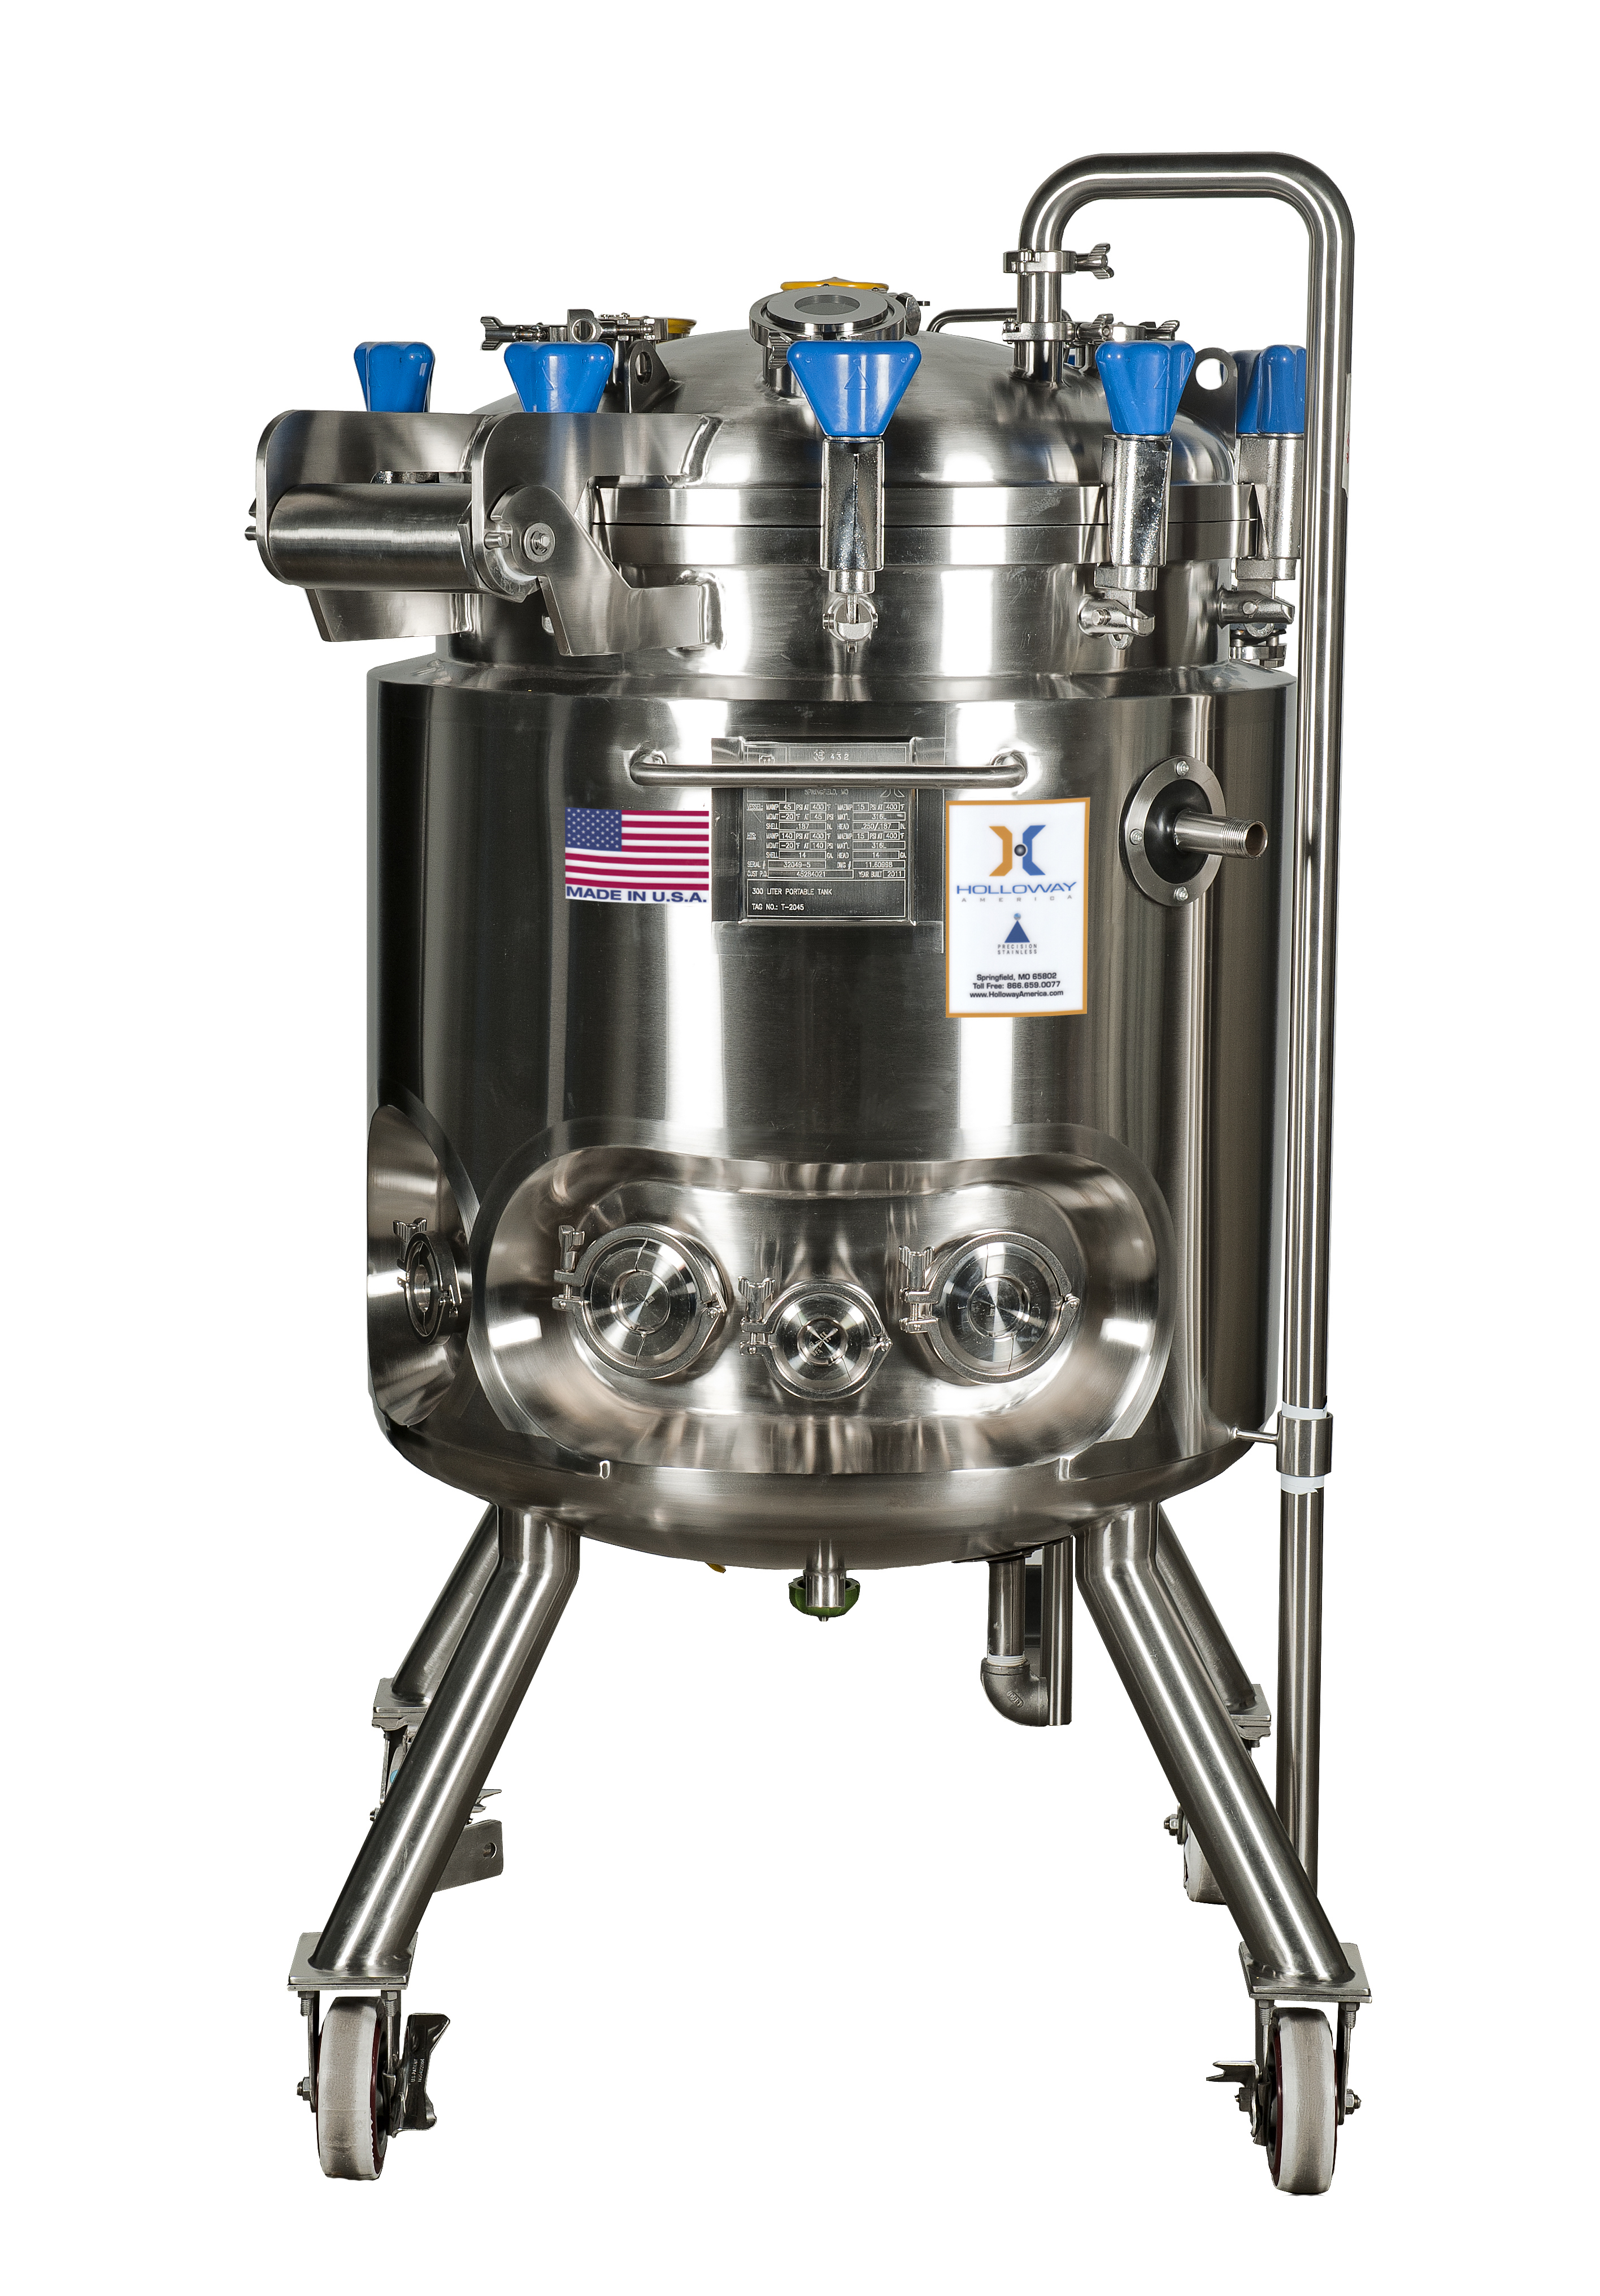 This tank is among Holloway's ASME pressure vessels and tanks.